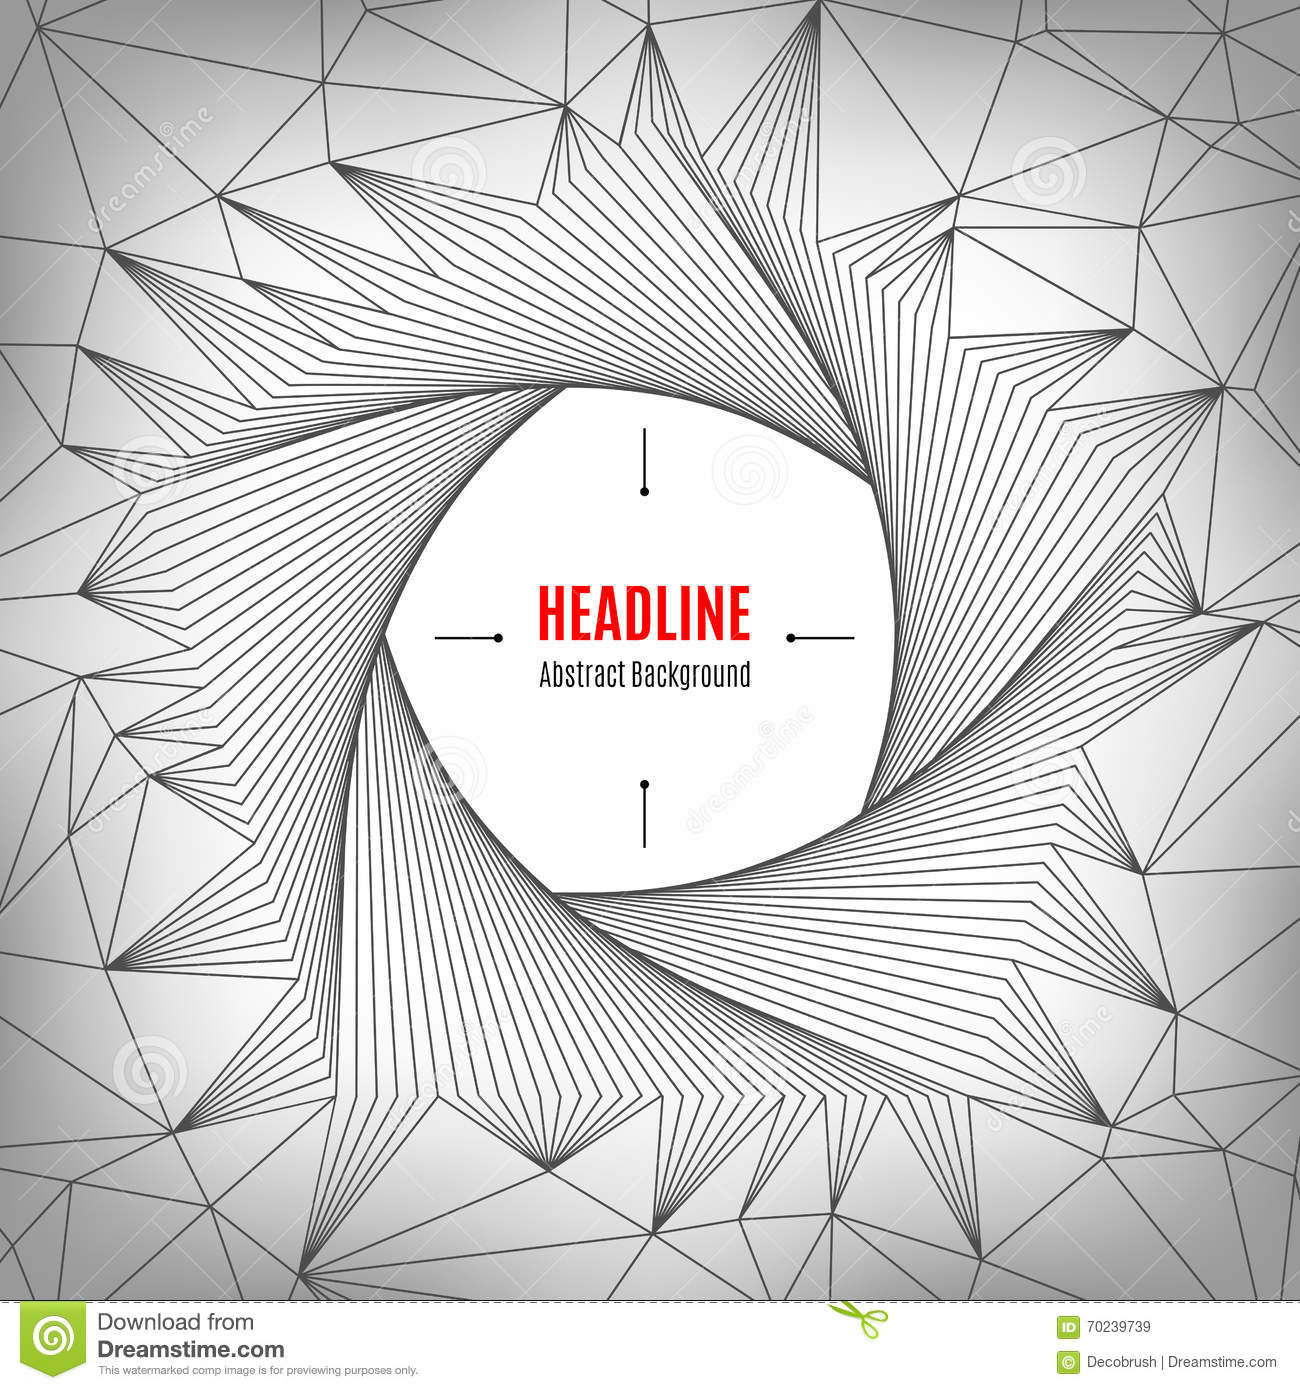 Line Art Poster Design : Pentagon line art design pattern geometric polygonal